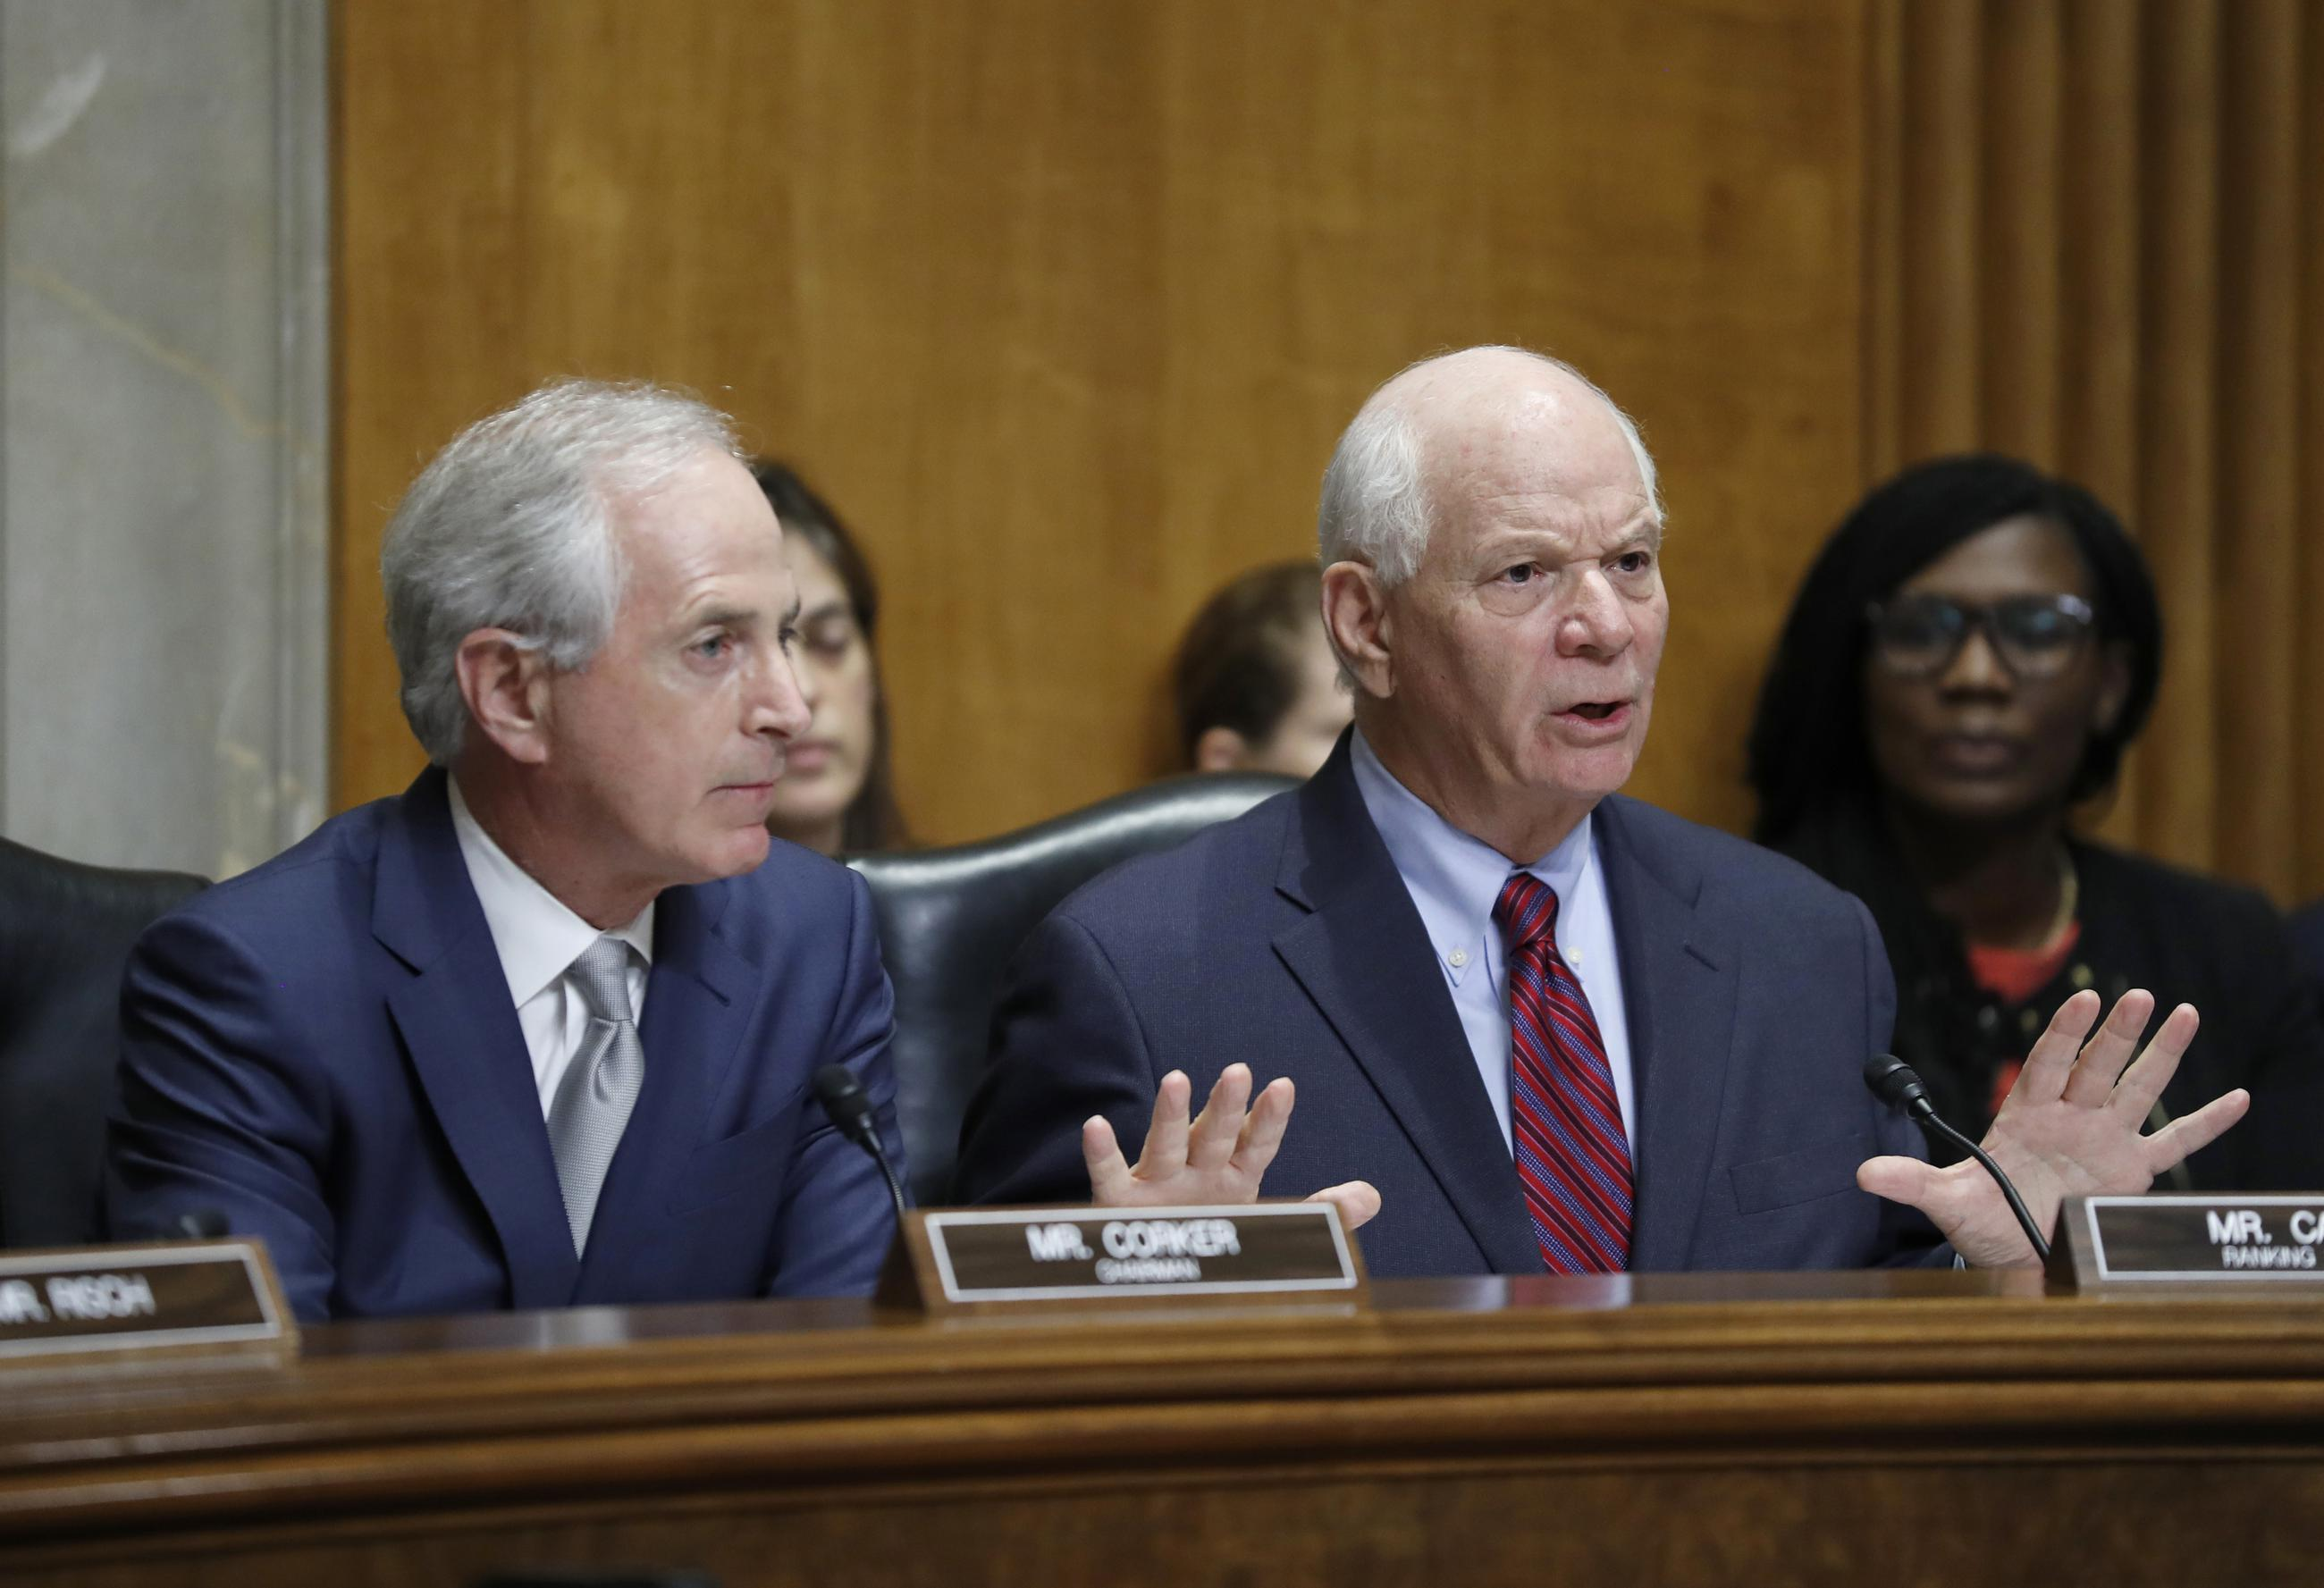 Congress Waits For White House On Iran Deal